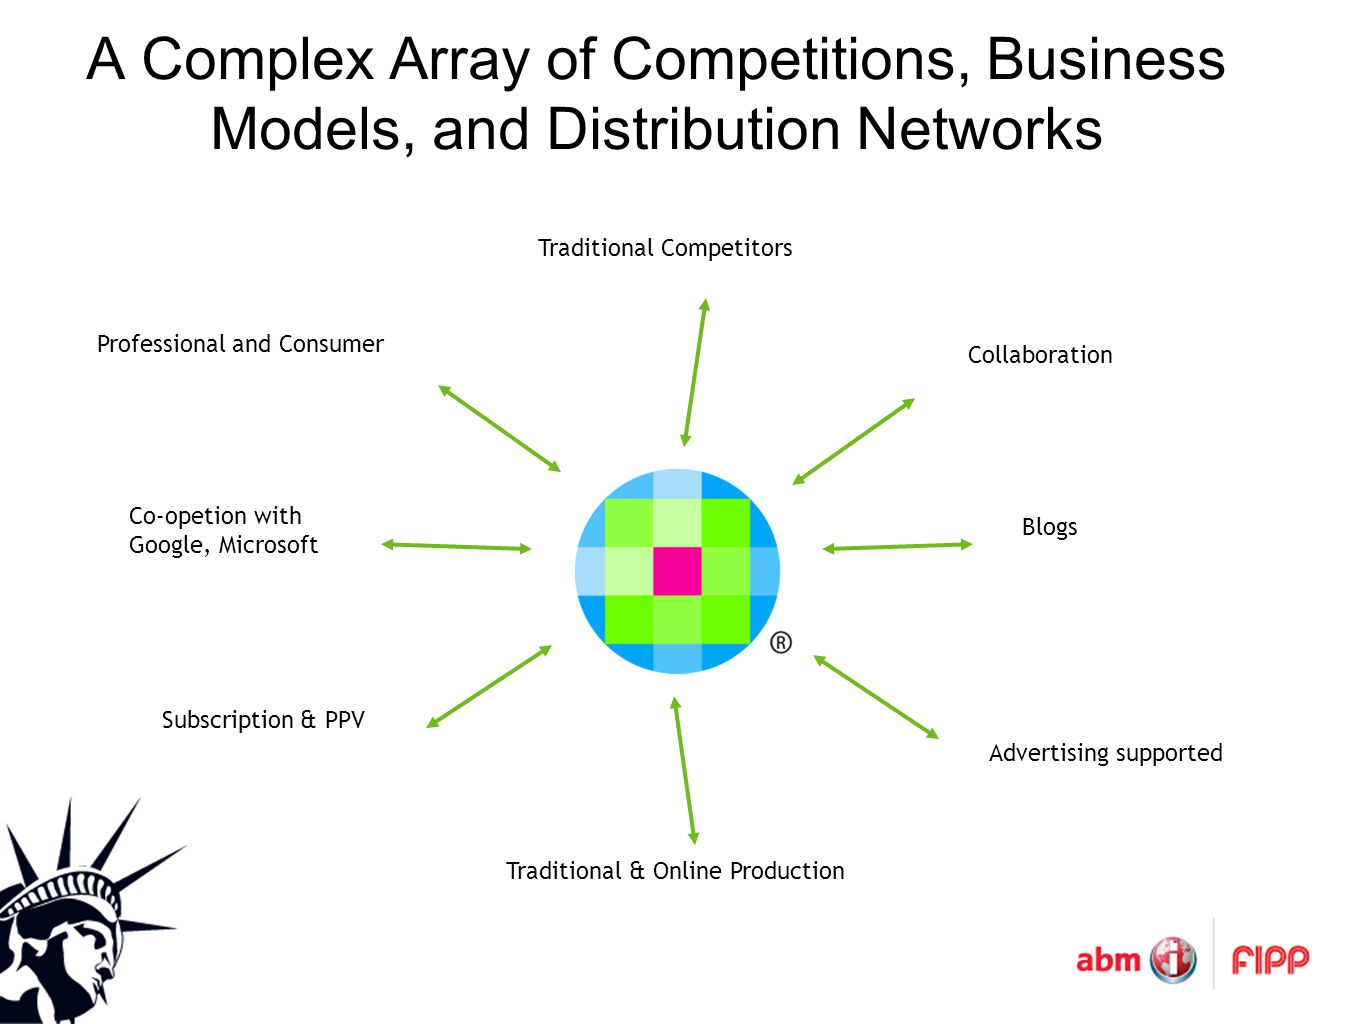 A Complex Array of Competitions, Business Models, and Distribution Networks Collaboration Blogs Advertising supported Traditional & Online Production Subscription & PPV Professional and Consumer Co-opetion with Google, Microsoft Traditional Competitors